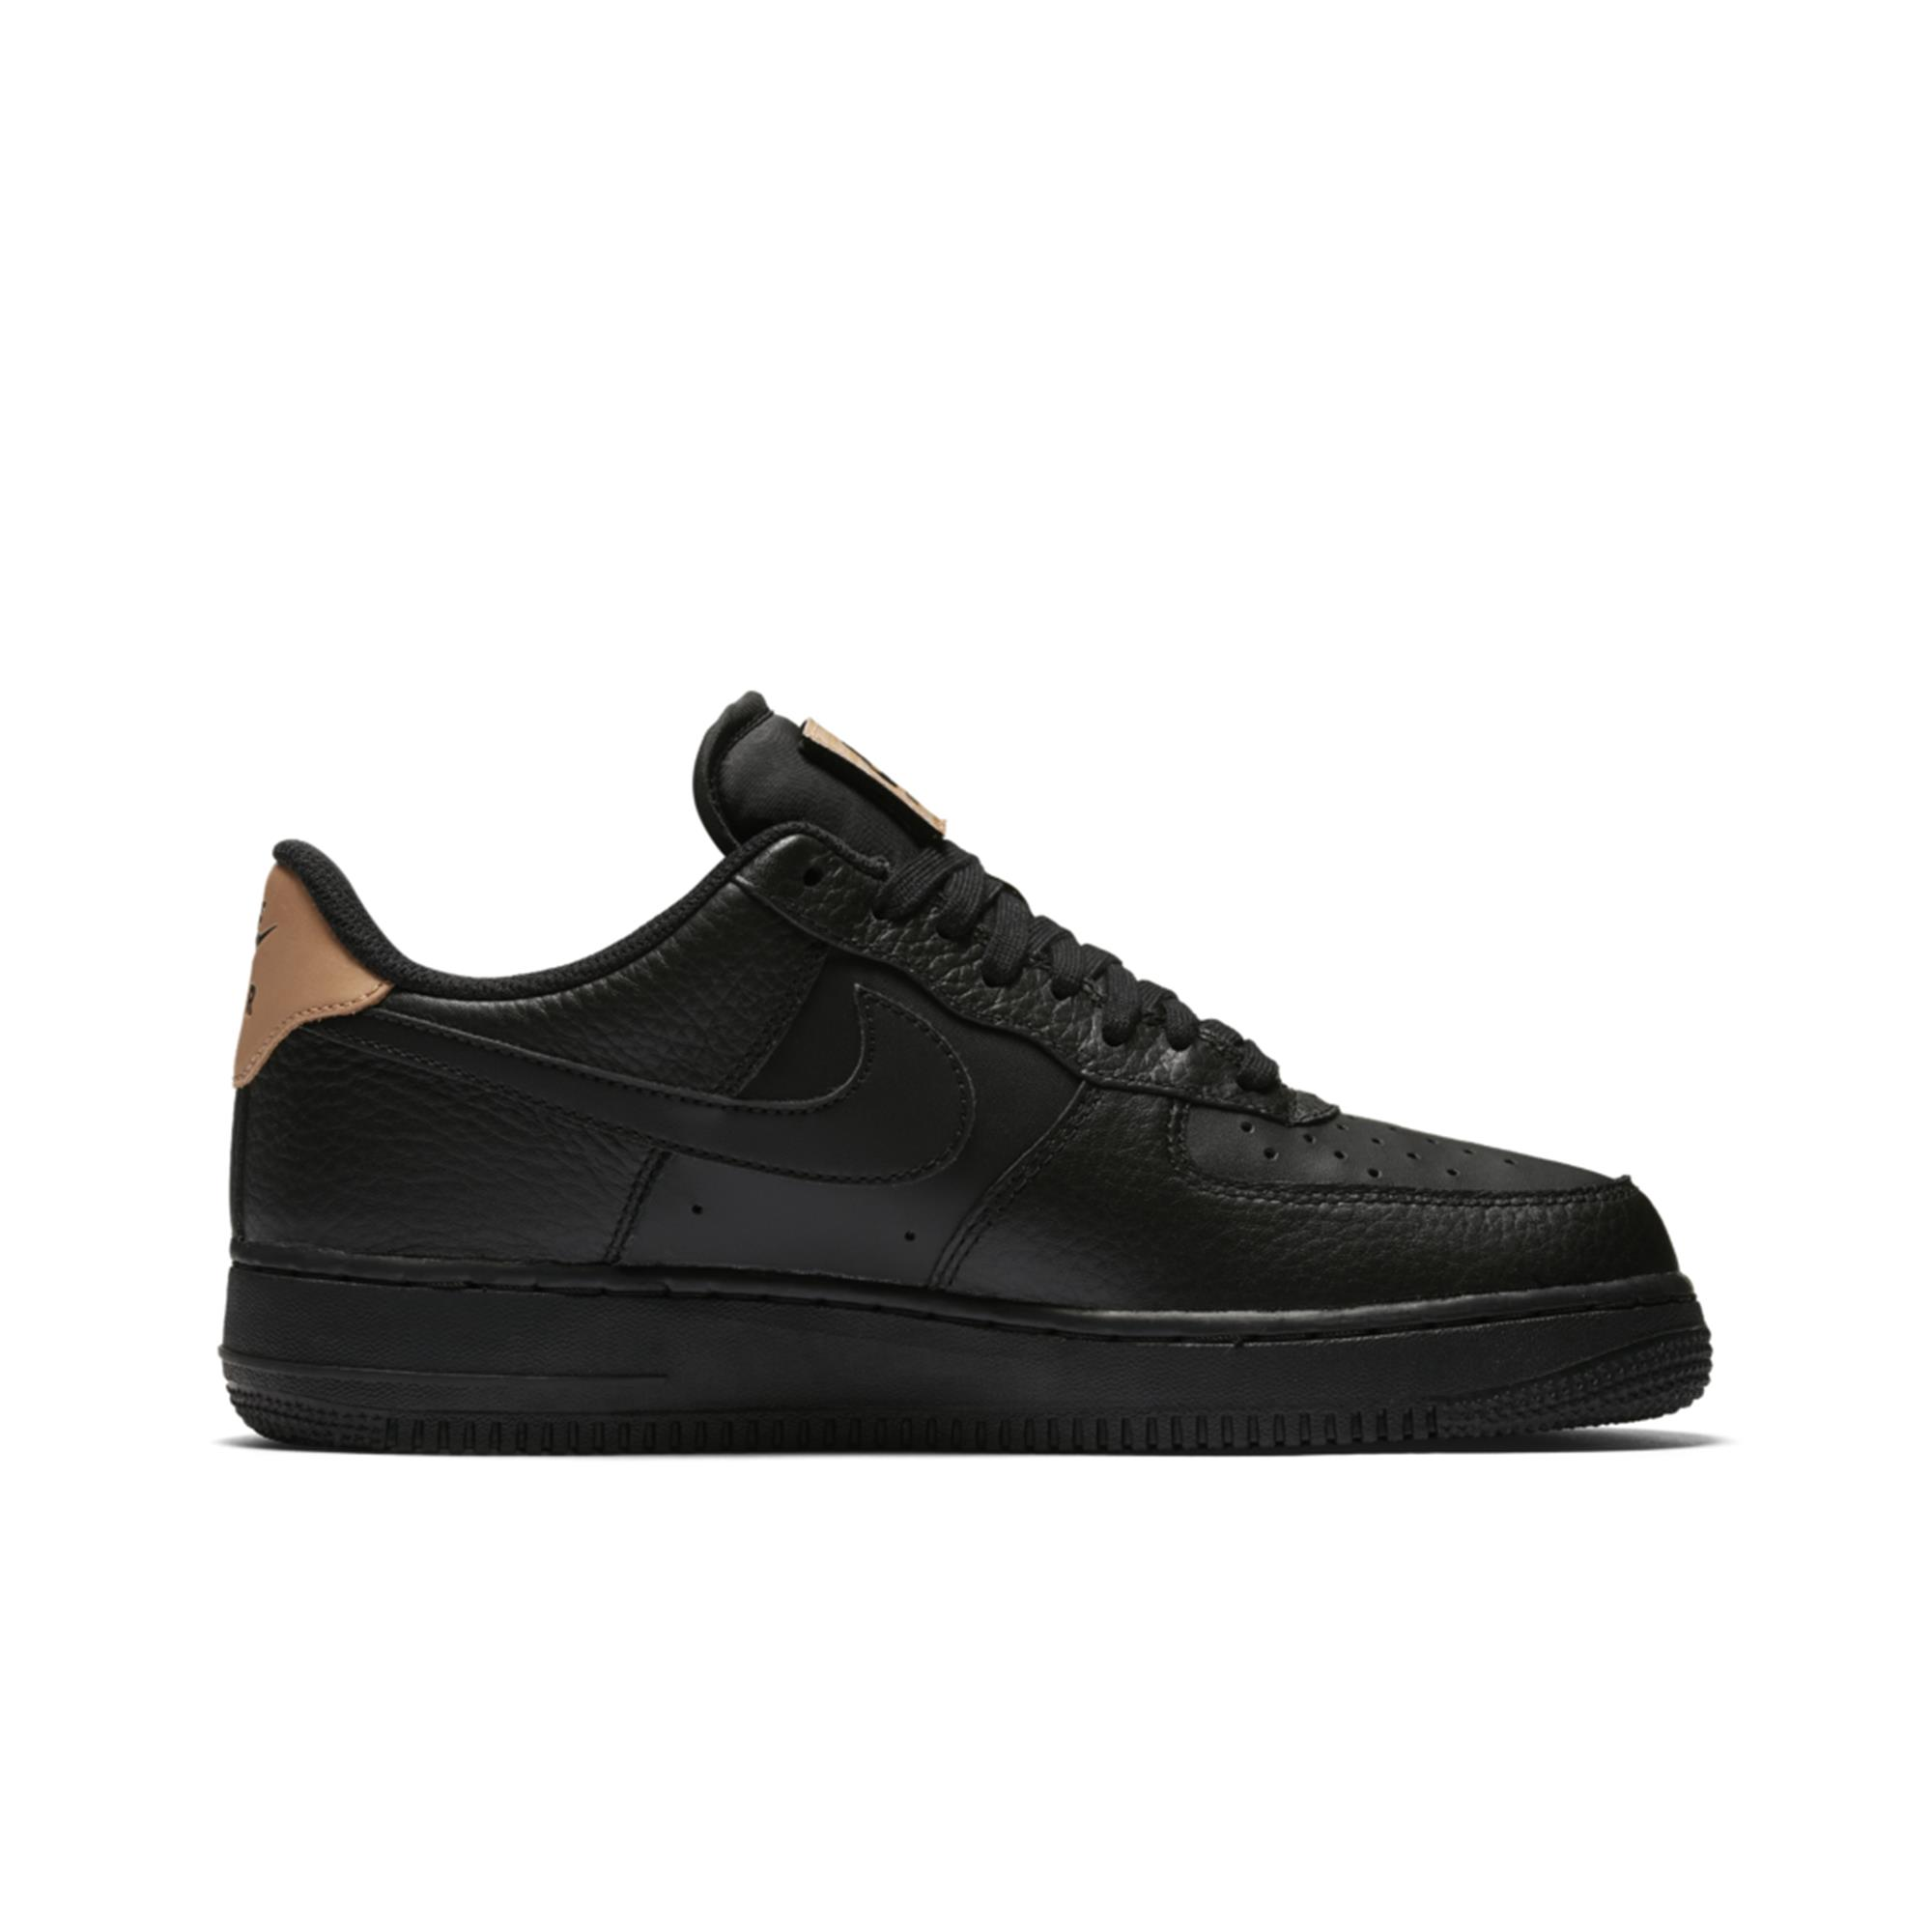 NIKE AIR FORCE 1 07 LV8 PRETO.jpg